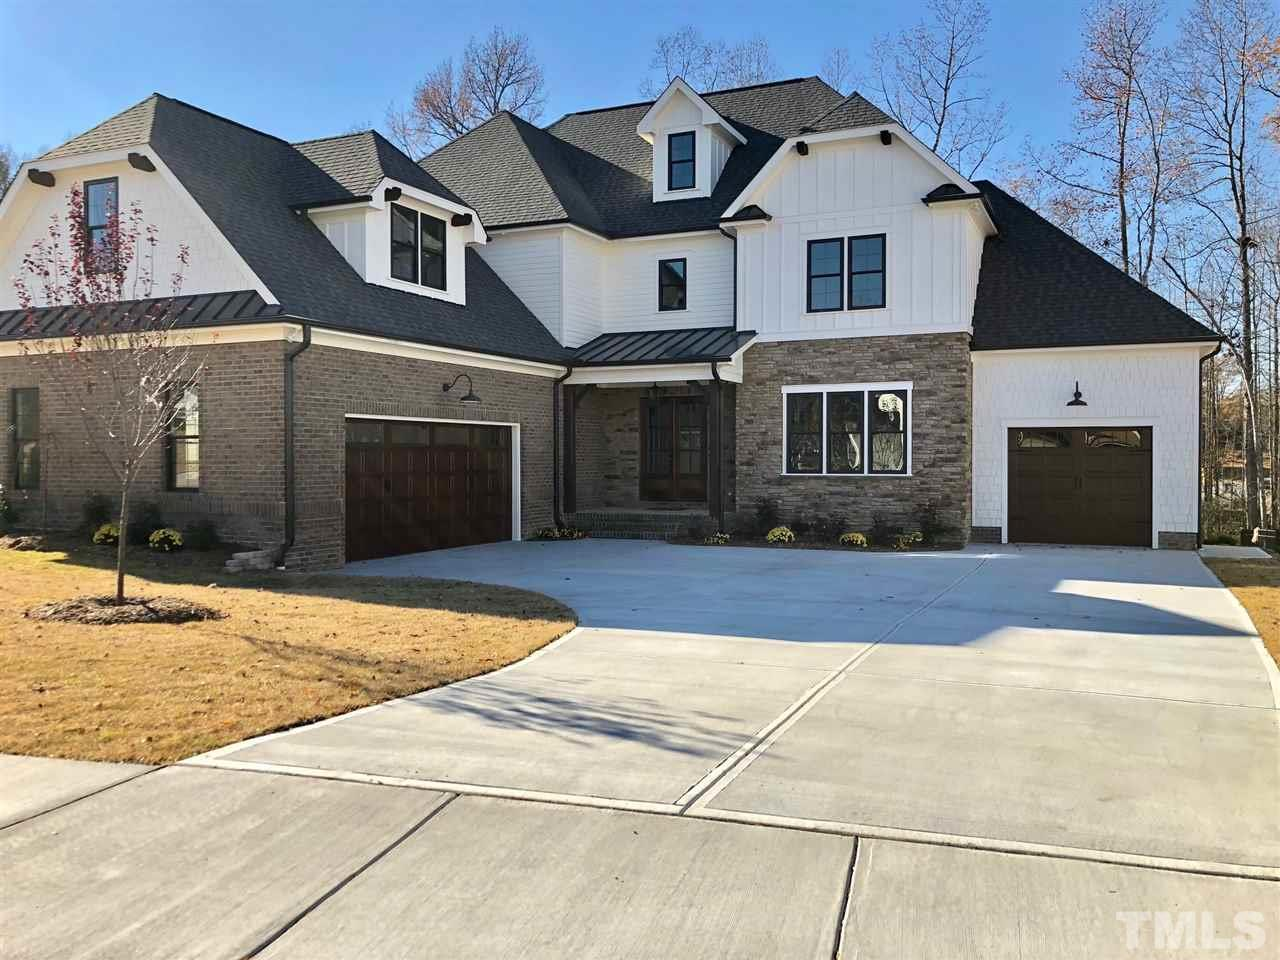 Incredible Custom Home that backs to lg buffer with Owner's Suite & Study on main level.(Study can be 6th bdrm if needed.) 2 Laundry rms, huge bonus rm, outstanding millwork, gorgeous timber feature ceiling in Fam Rm, solid core doors throughout 1st flr. Owner's closet access to laundry. Cov'd porch has outdoor kit w/ granite top, 4 burner ss gas grill & stainless sink. Multi season screen porch w/EZE breeze windows. Ped tub w/wand spray in Owner's Bath. Pro appl pkg. +bev cooler, Mudrm w/shiplap & MORE!